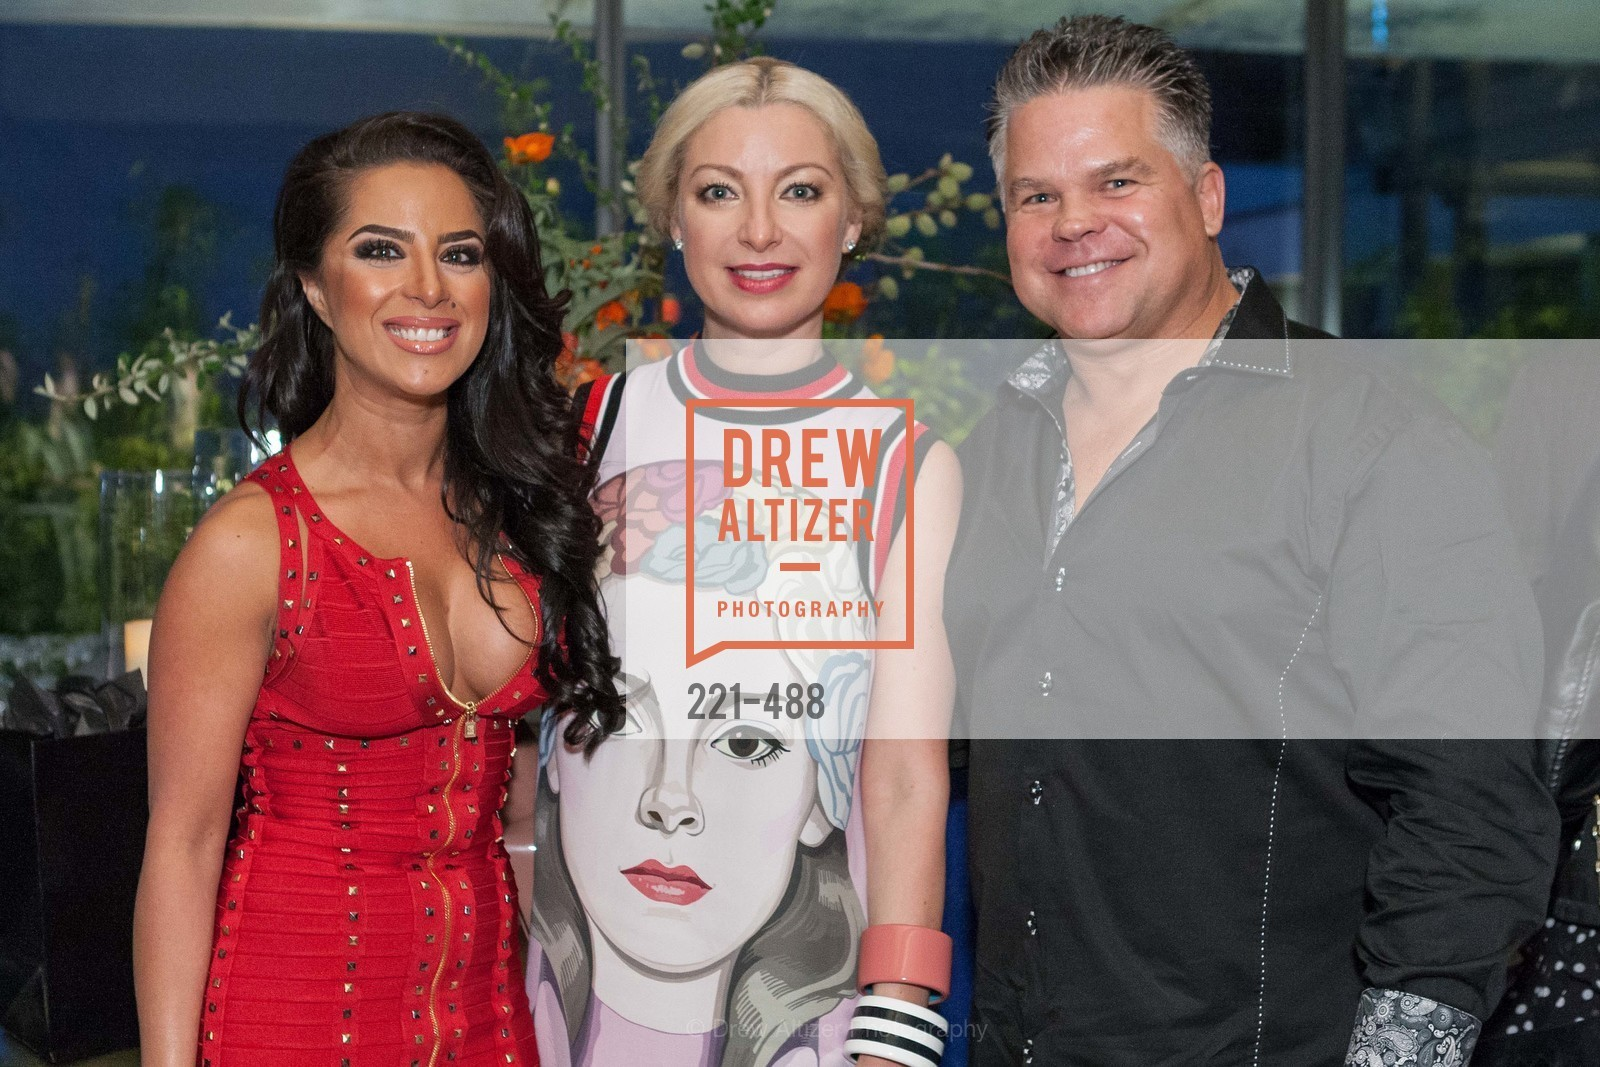 Molly Noorzai, Sonya Molodetskaya, Bruce Vereschuk, SONYA MOLODETSKAYA's Birthday Party, US. The Battery Penthouse, April 1st, 2014,Drew Altizer, Drew Altizer Photography, full-service agency, private events, San Francisco photographer, photographer california